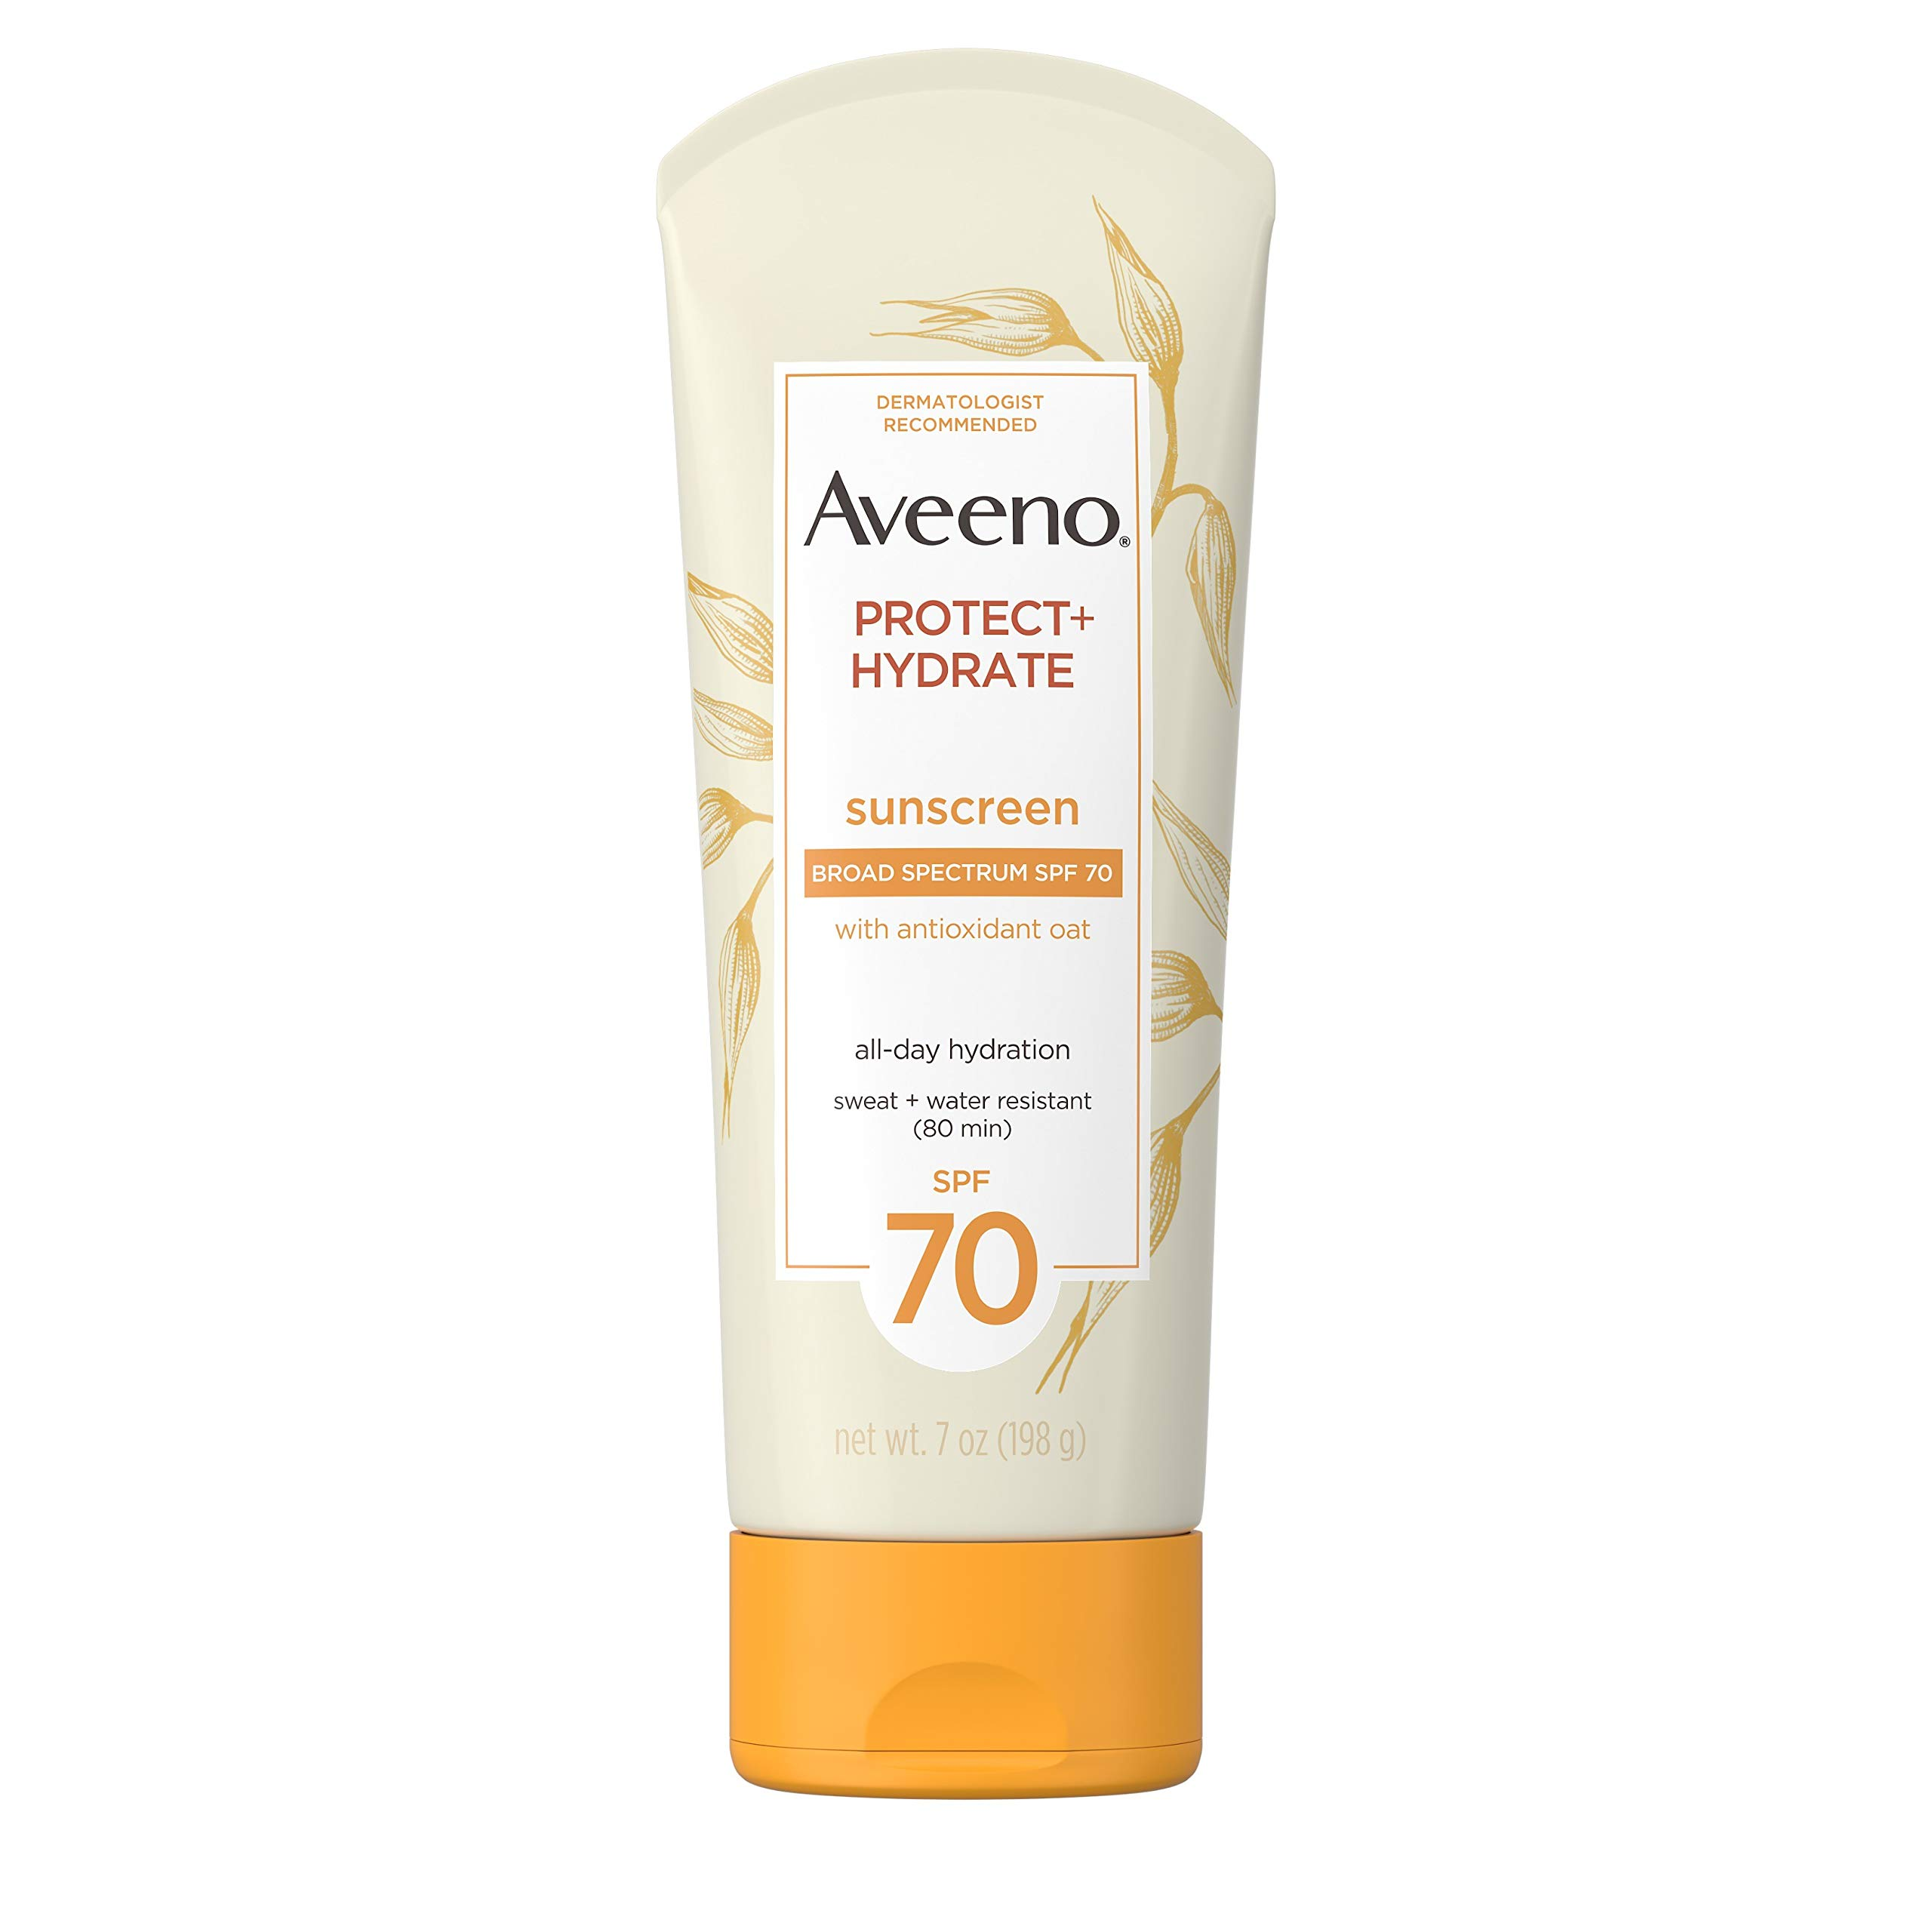 Aveeno Protect + Hydrate Moisturizing Sunscreen Lotion with Broad Spectrum SPF 70 & Antioxidant Oat, Oil-Free, Sweat- & Water-Resistant Sun Protection, 7 oz by Aveeno